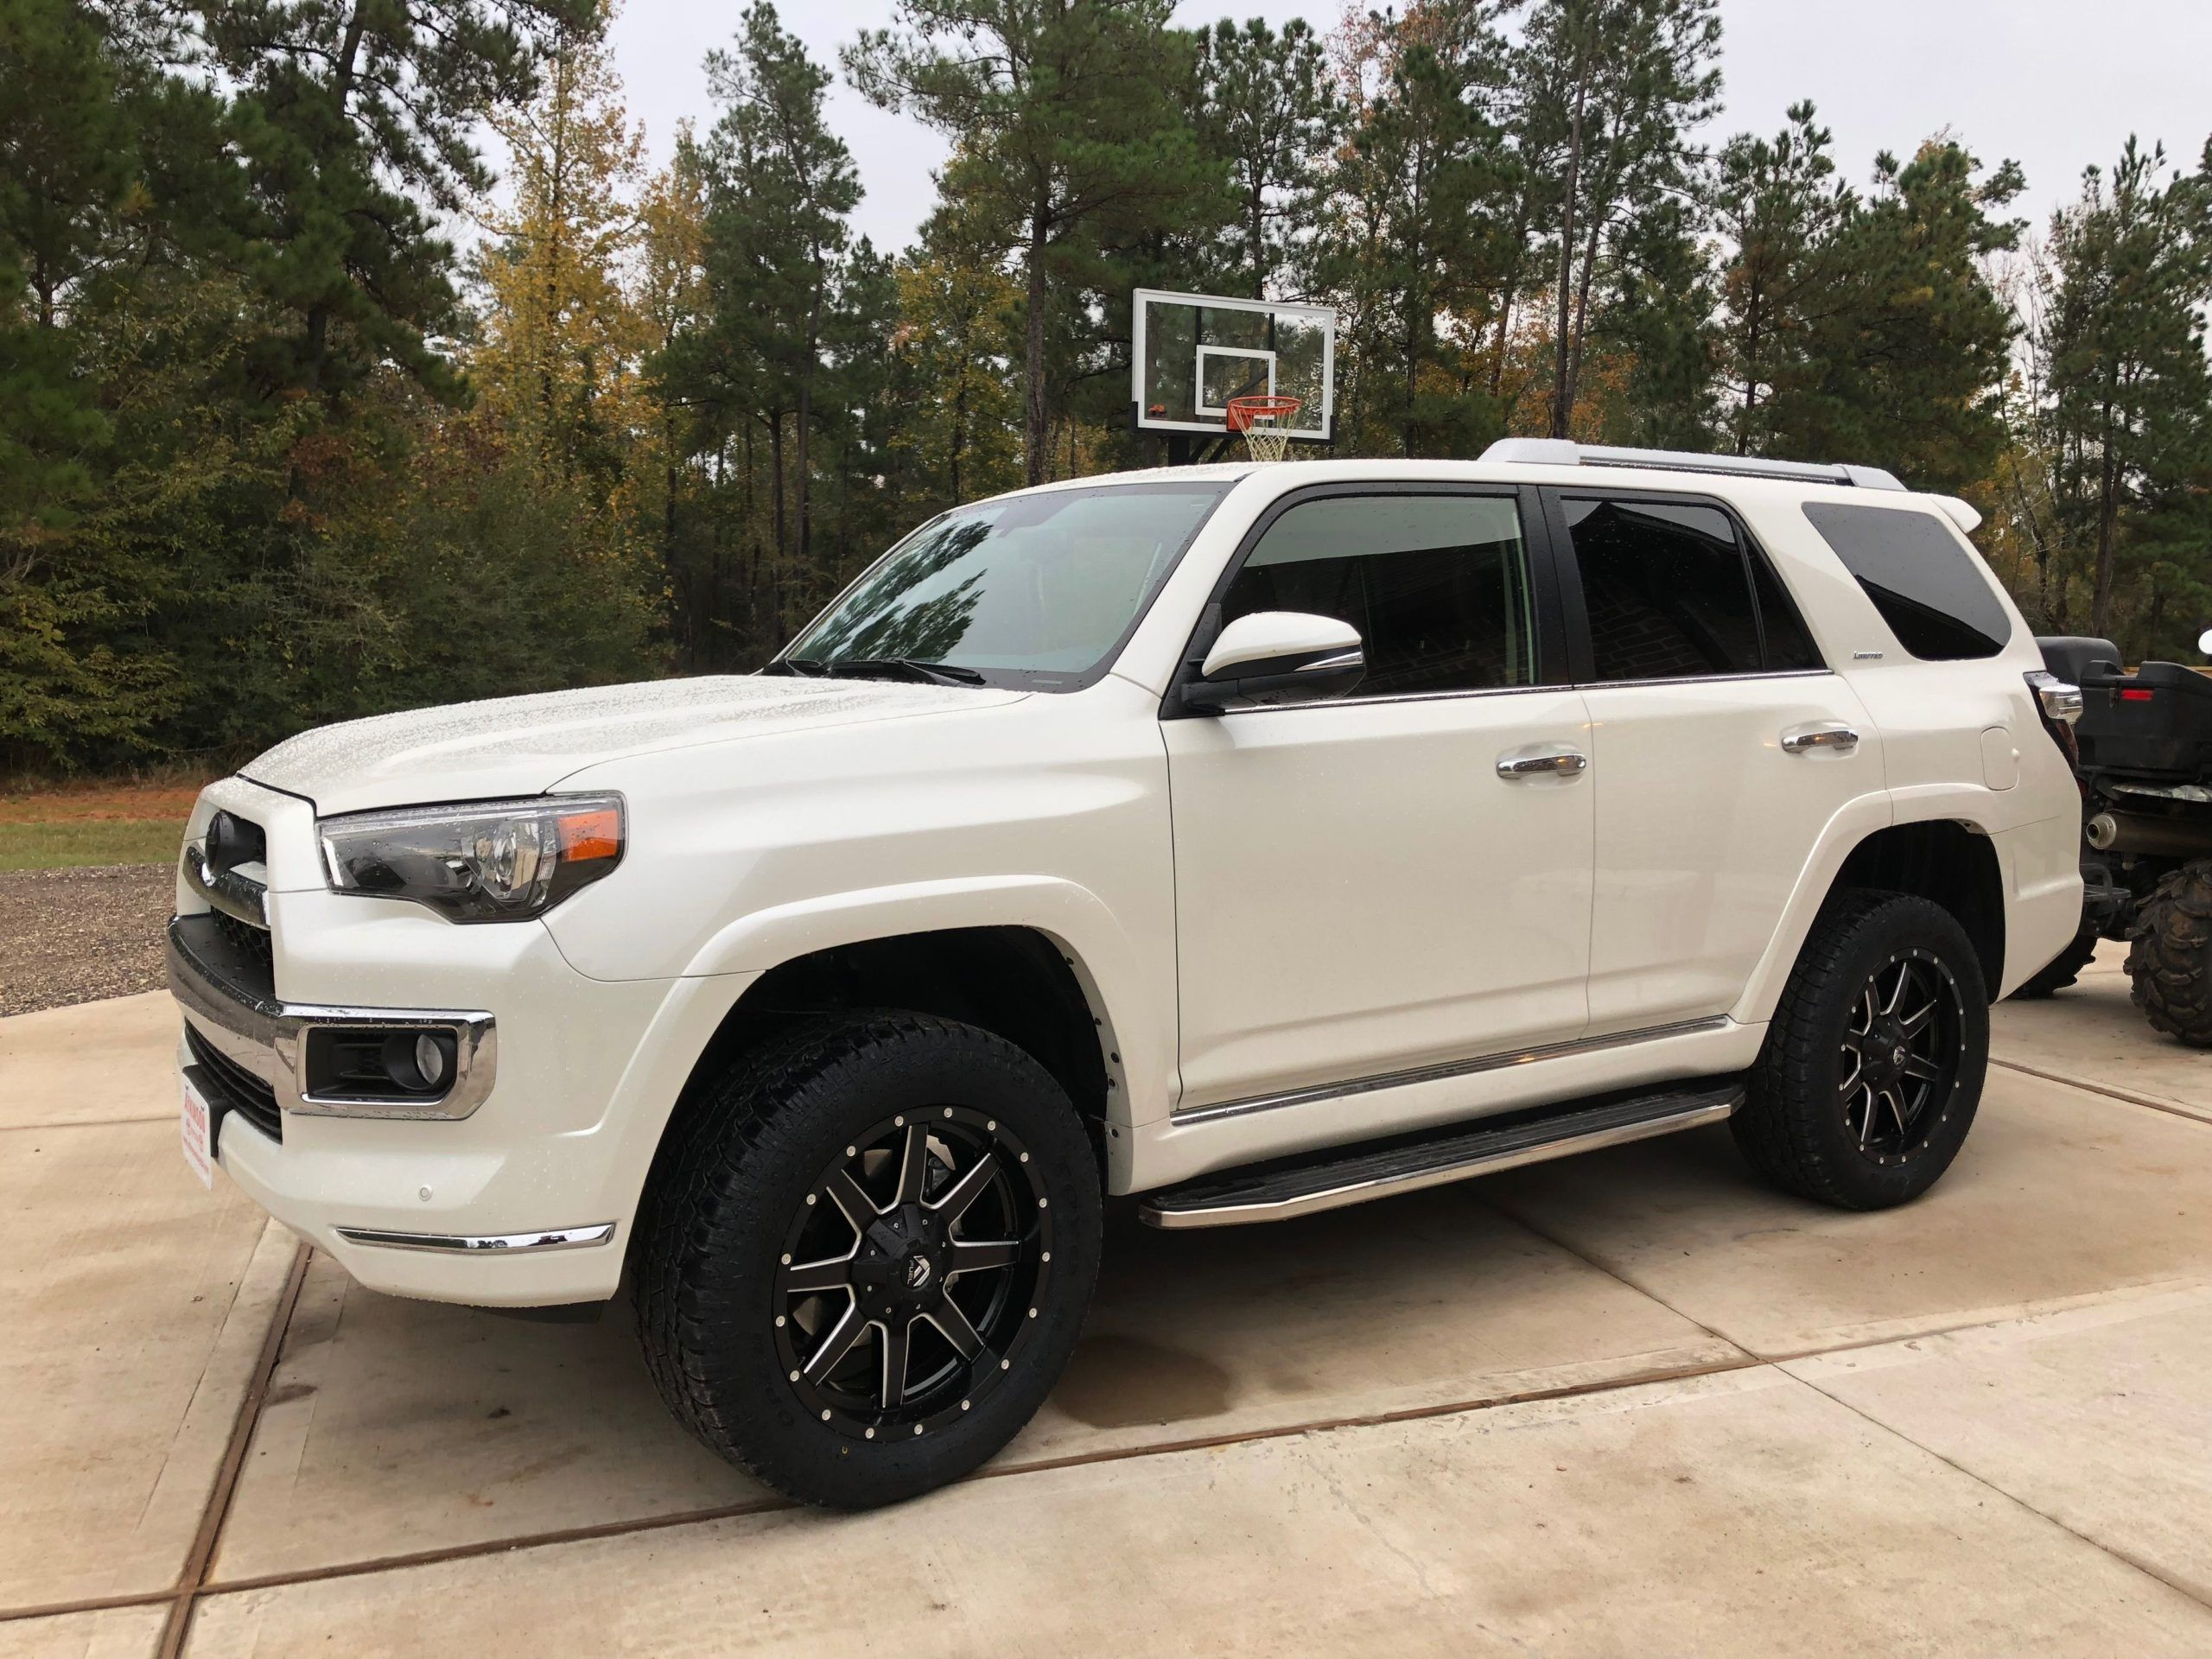 2017 Toyota 4runner Sr5 3rd Row With Trd Pro Front End In 2020 Toyota 4runner 4runner Toyota 4runner Sr5